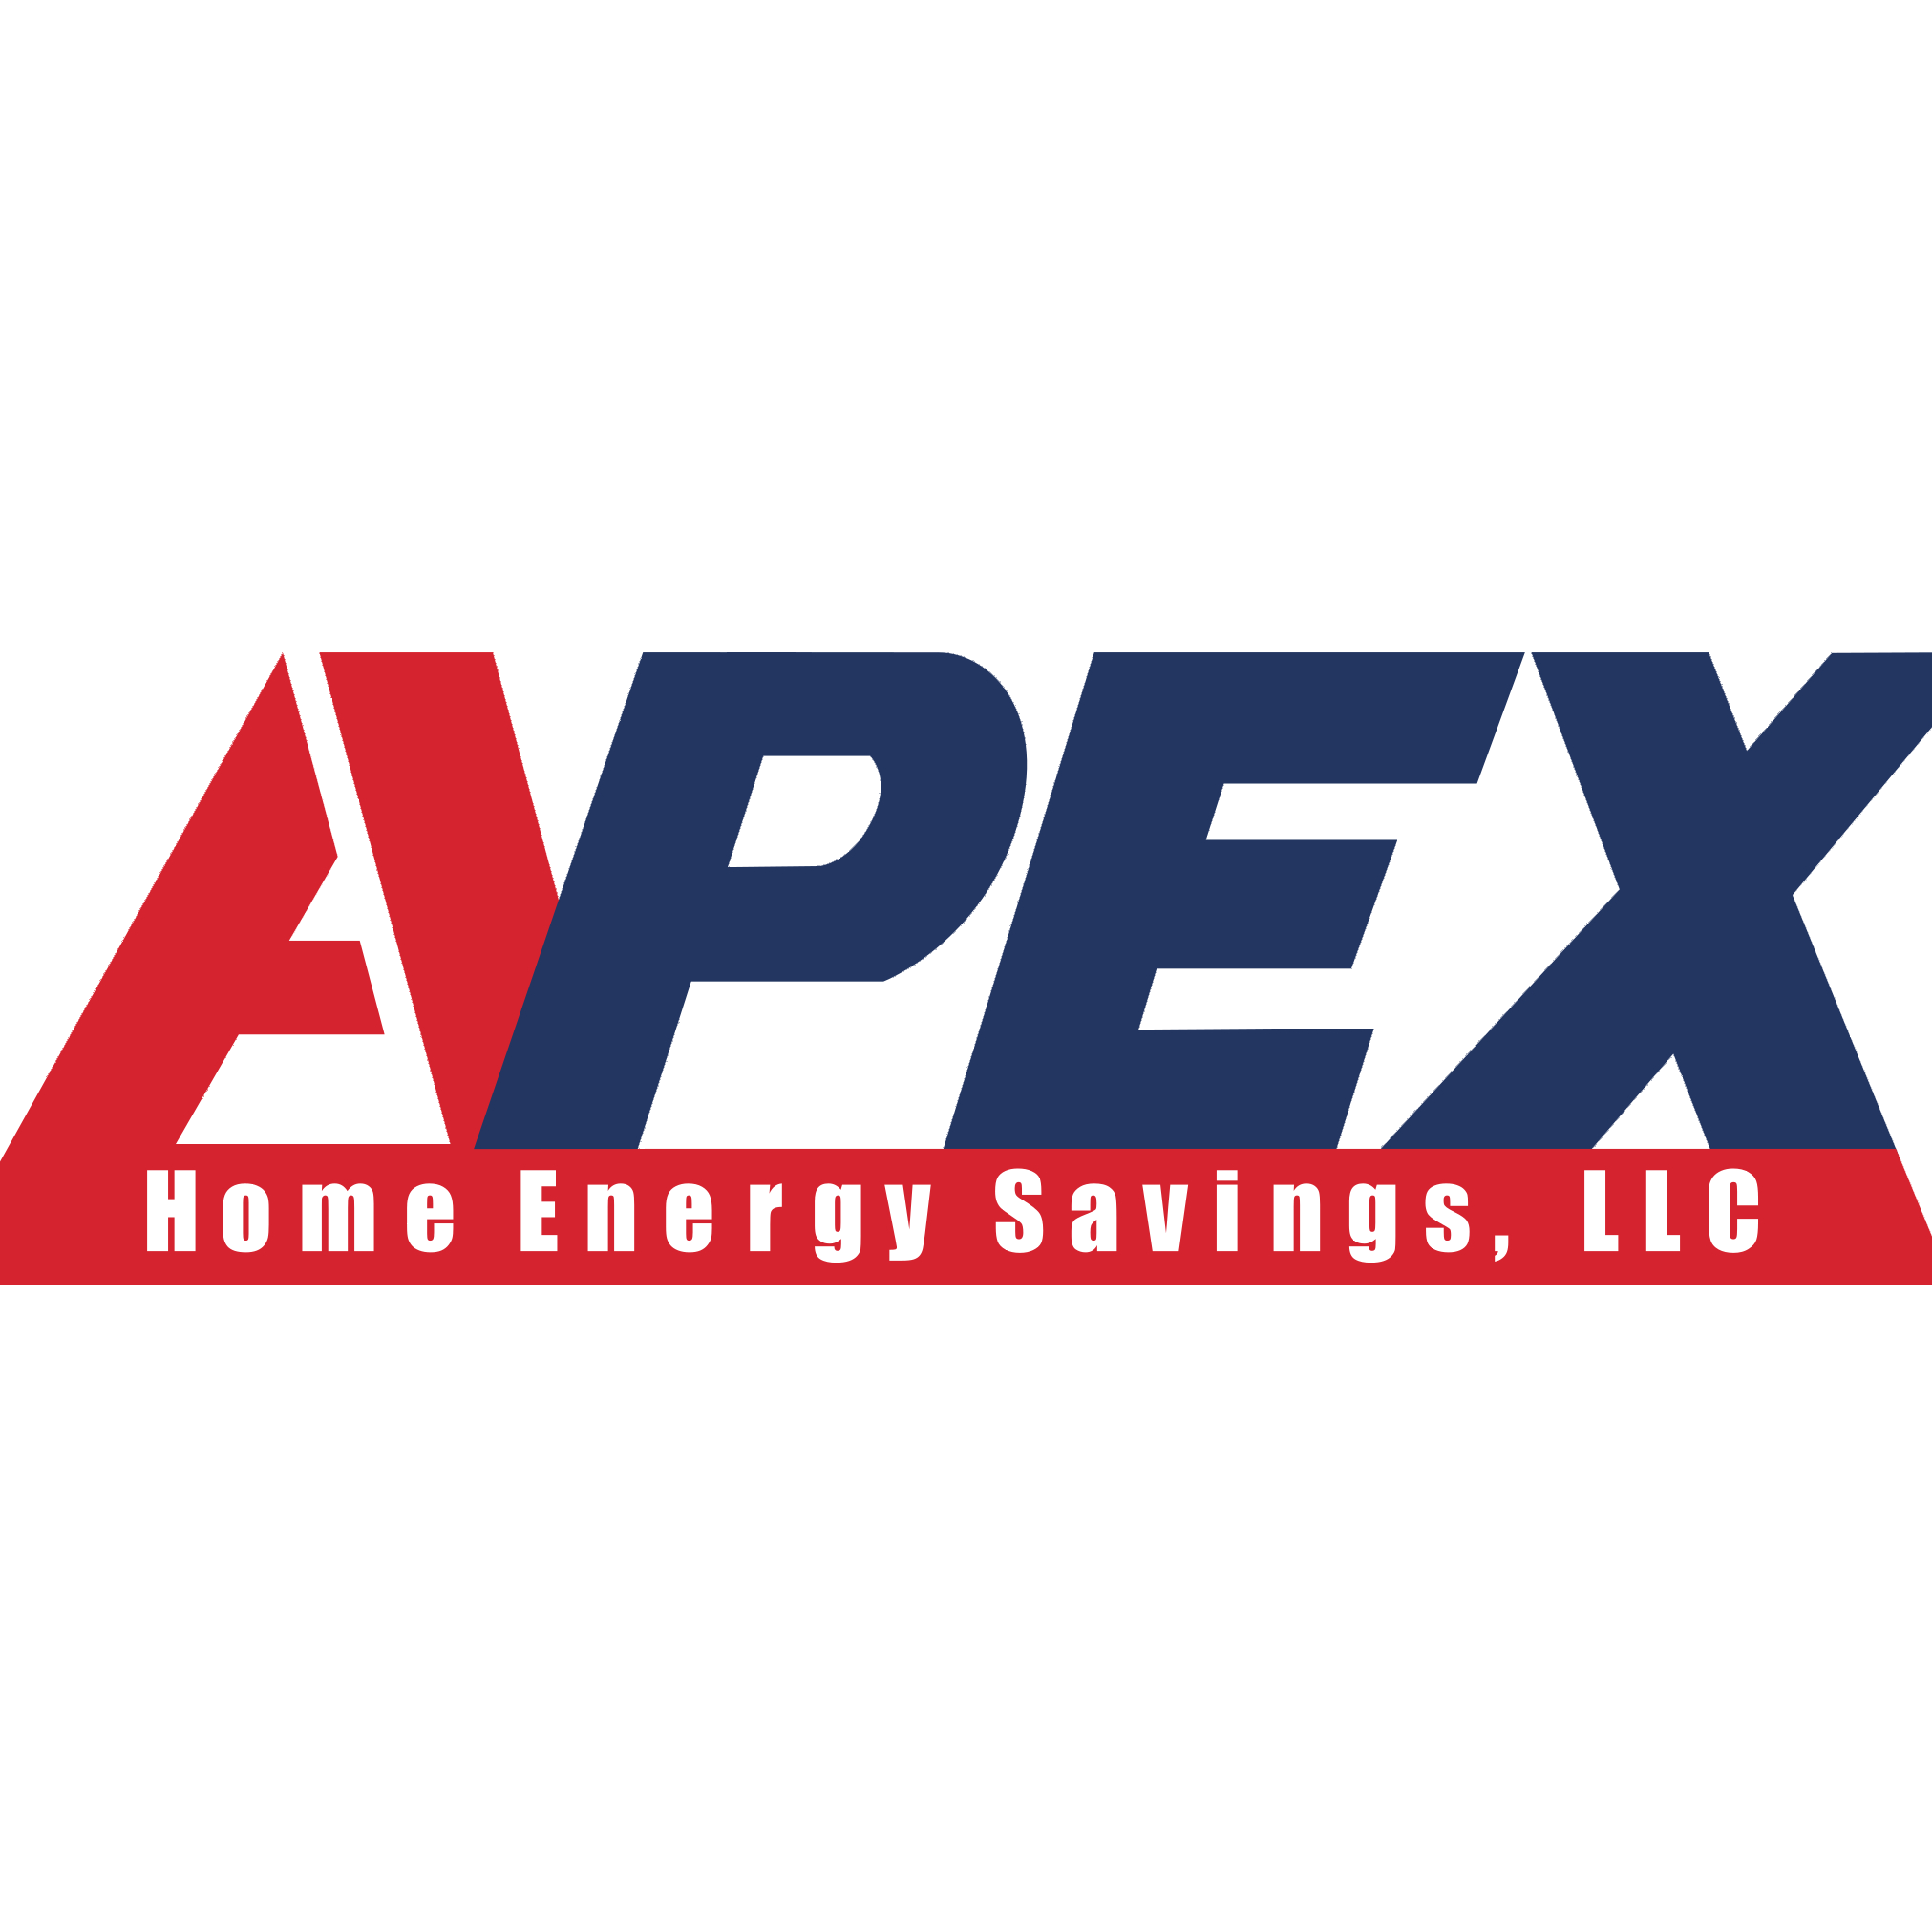 APEX Home Energy Savings, LLC. - Arlington, TX - Heating & Air Conditioning